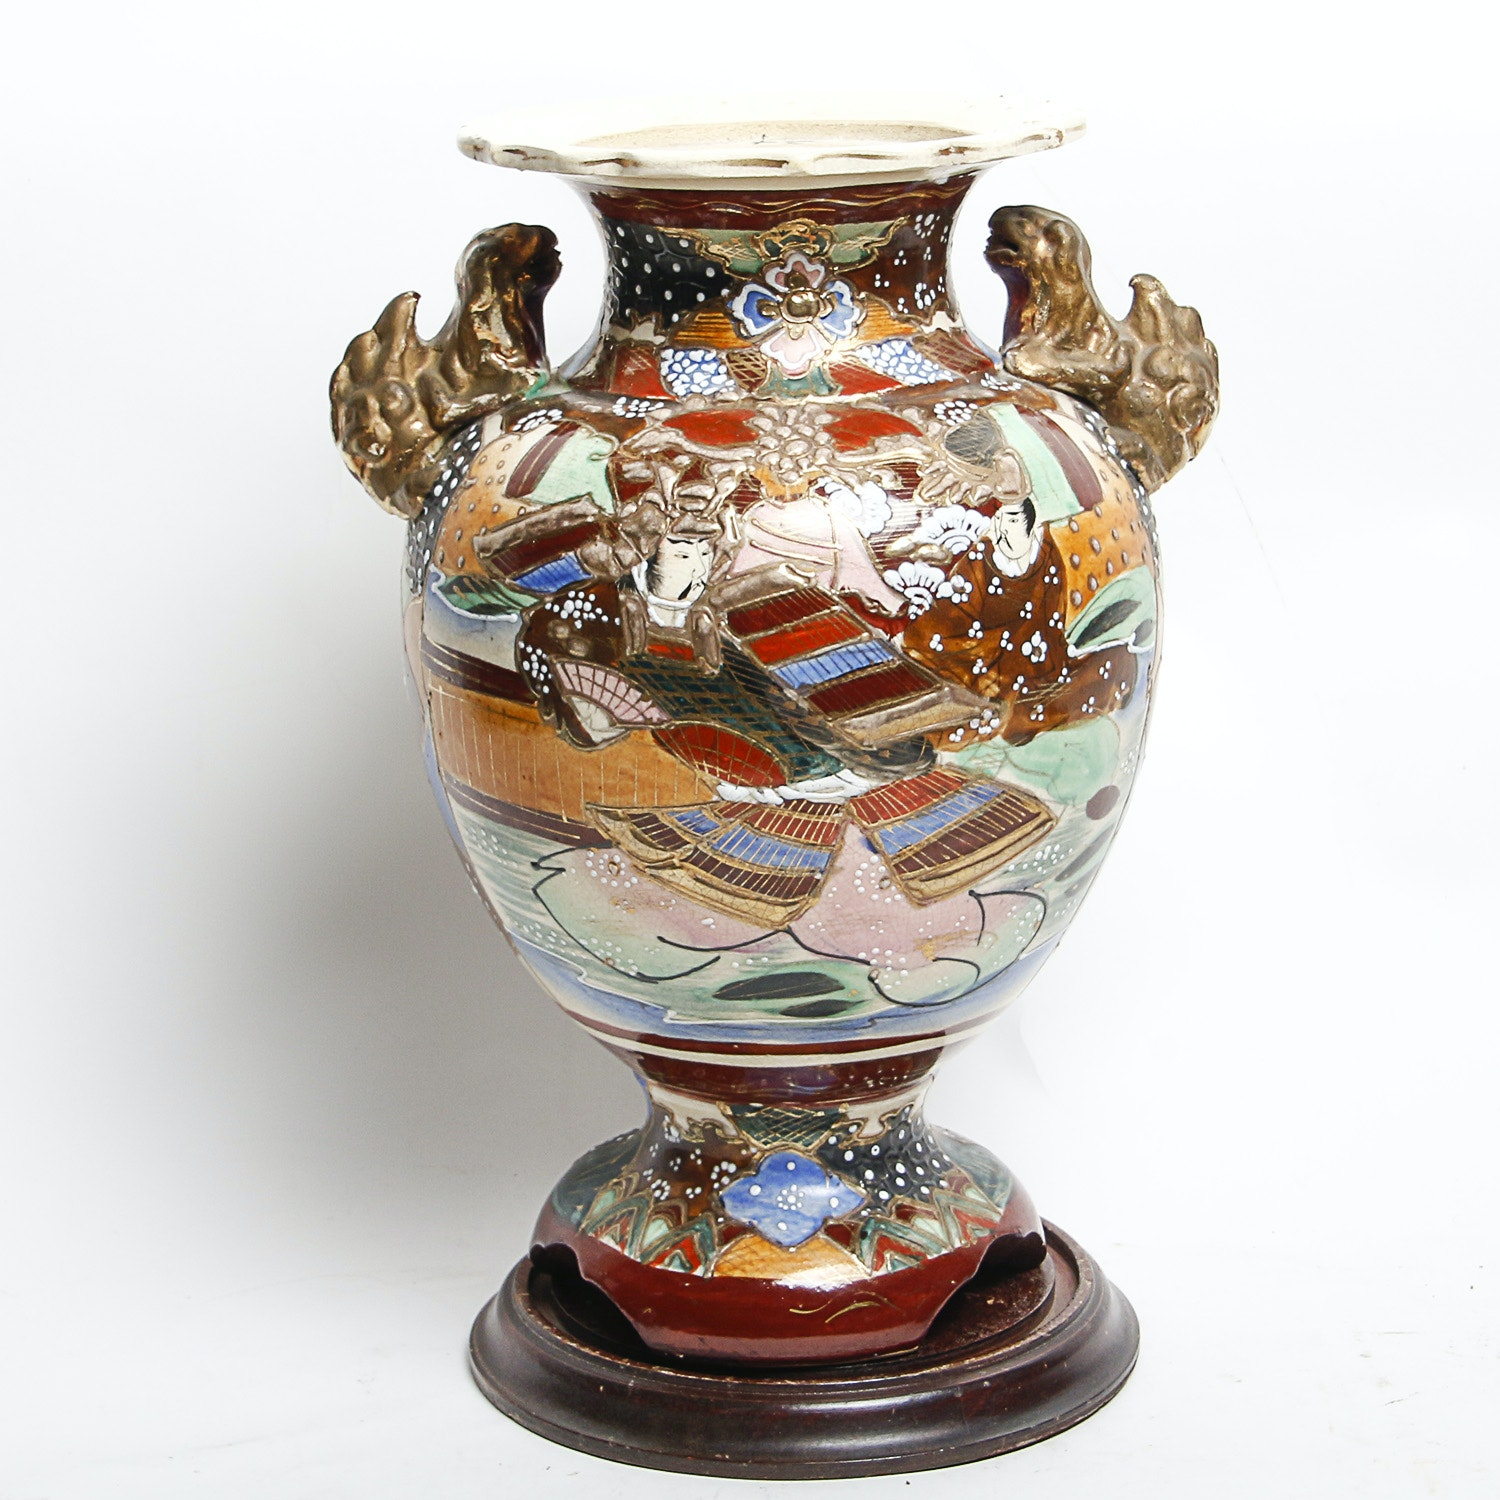 Japanese Ceramic Urn with Wooden Stand